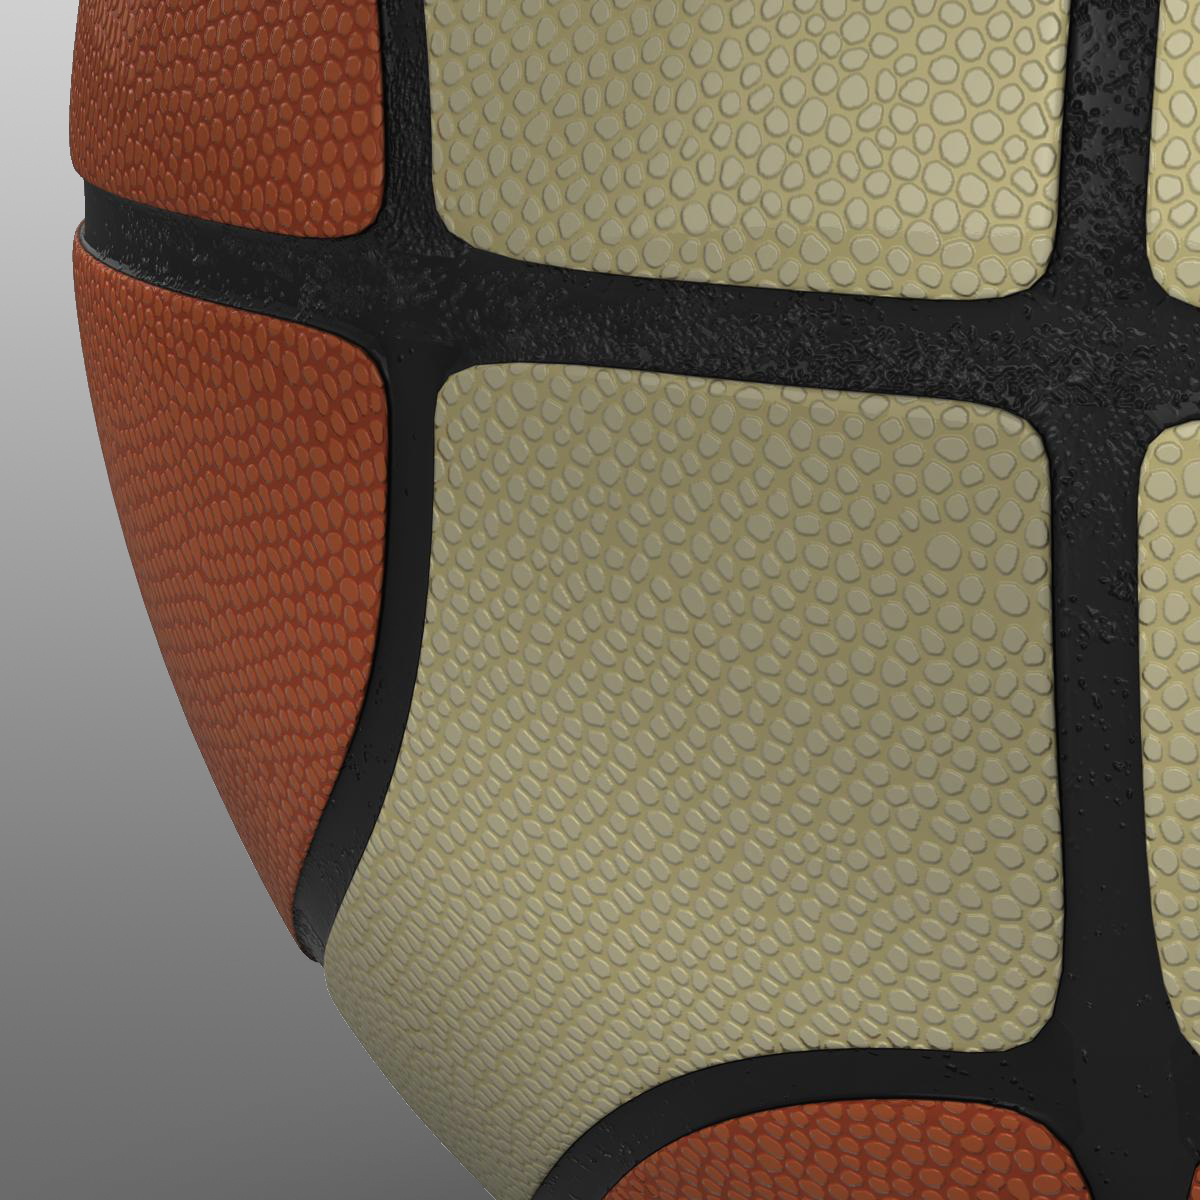 basketball ball eba 3d model 3ds max fbx c4d ma mb obj 165283